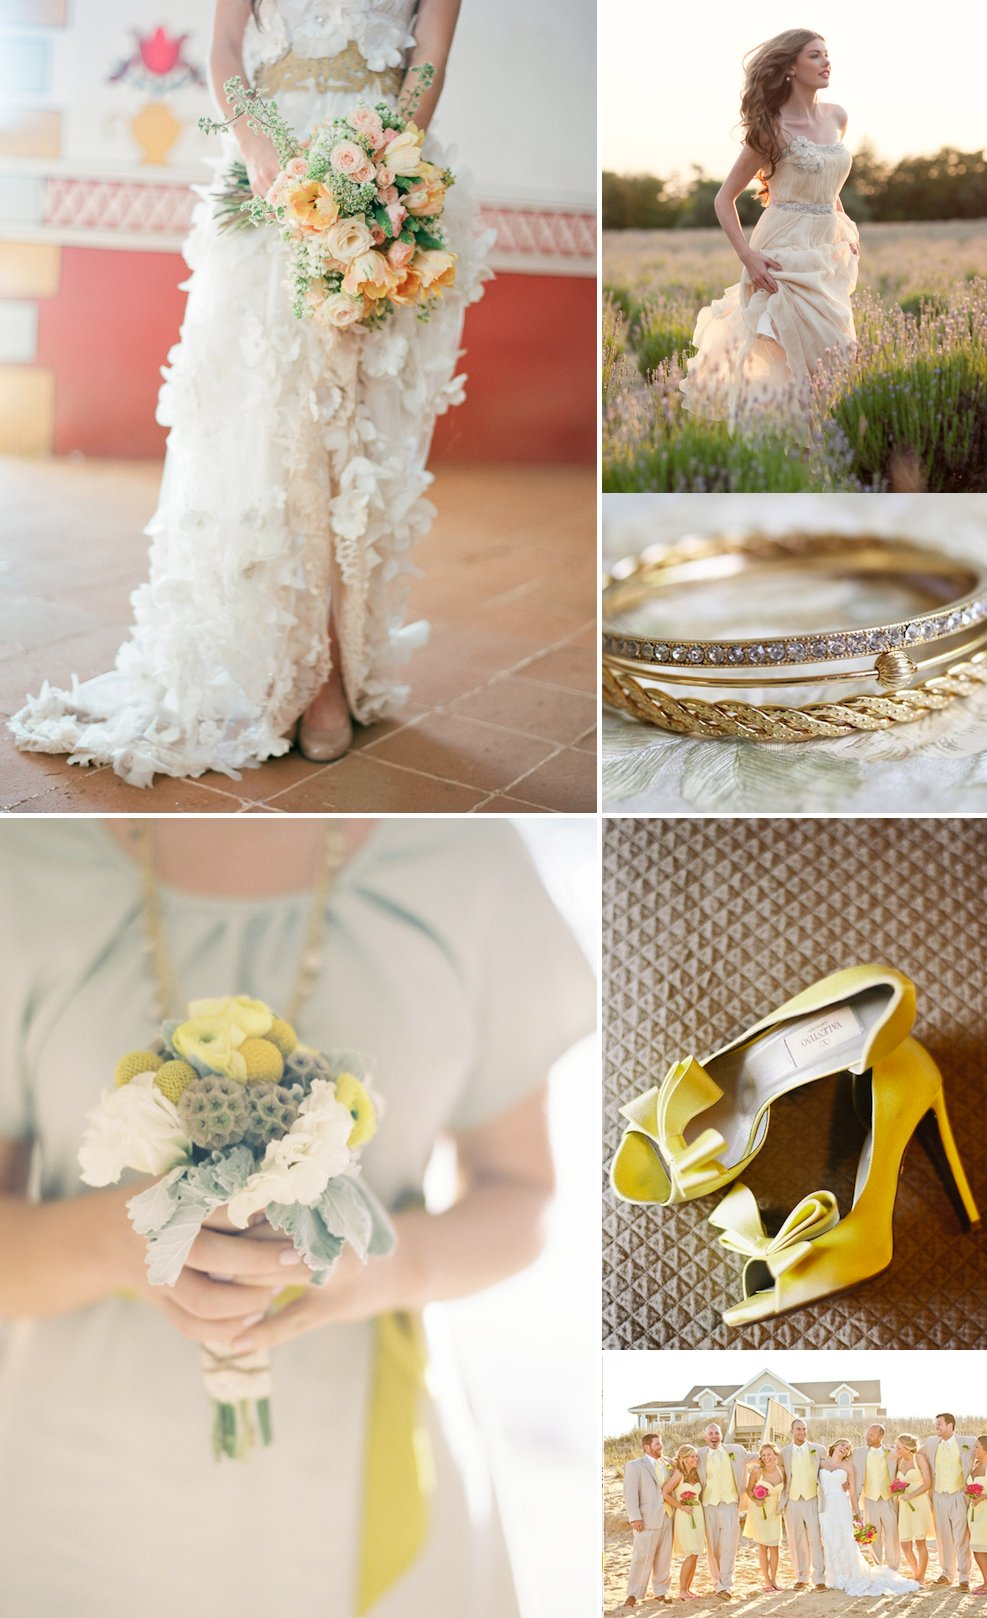 Romantic-wedding-color-inspiration-taupe-yellow-ecru-3.full